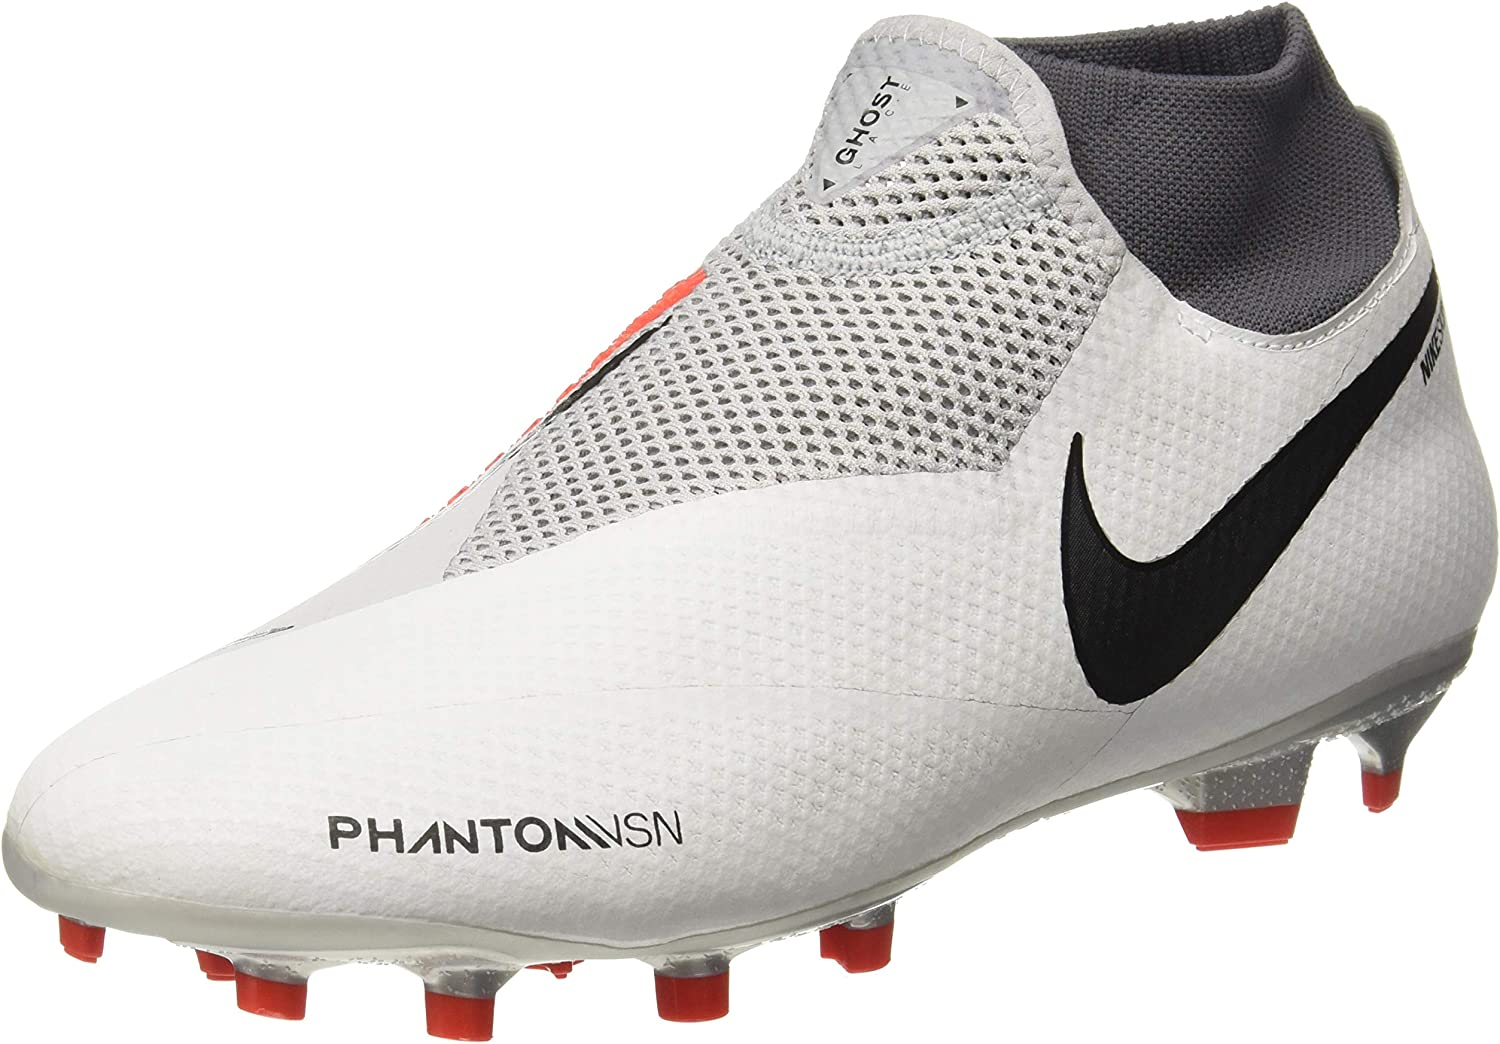 Nike Phantom Vsn Pro DF FG, Sneakers Basses Mixte Adulte